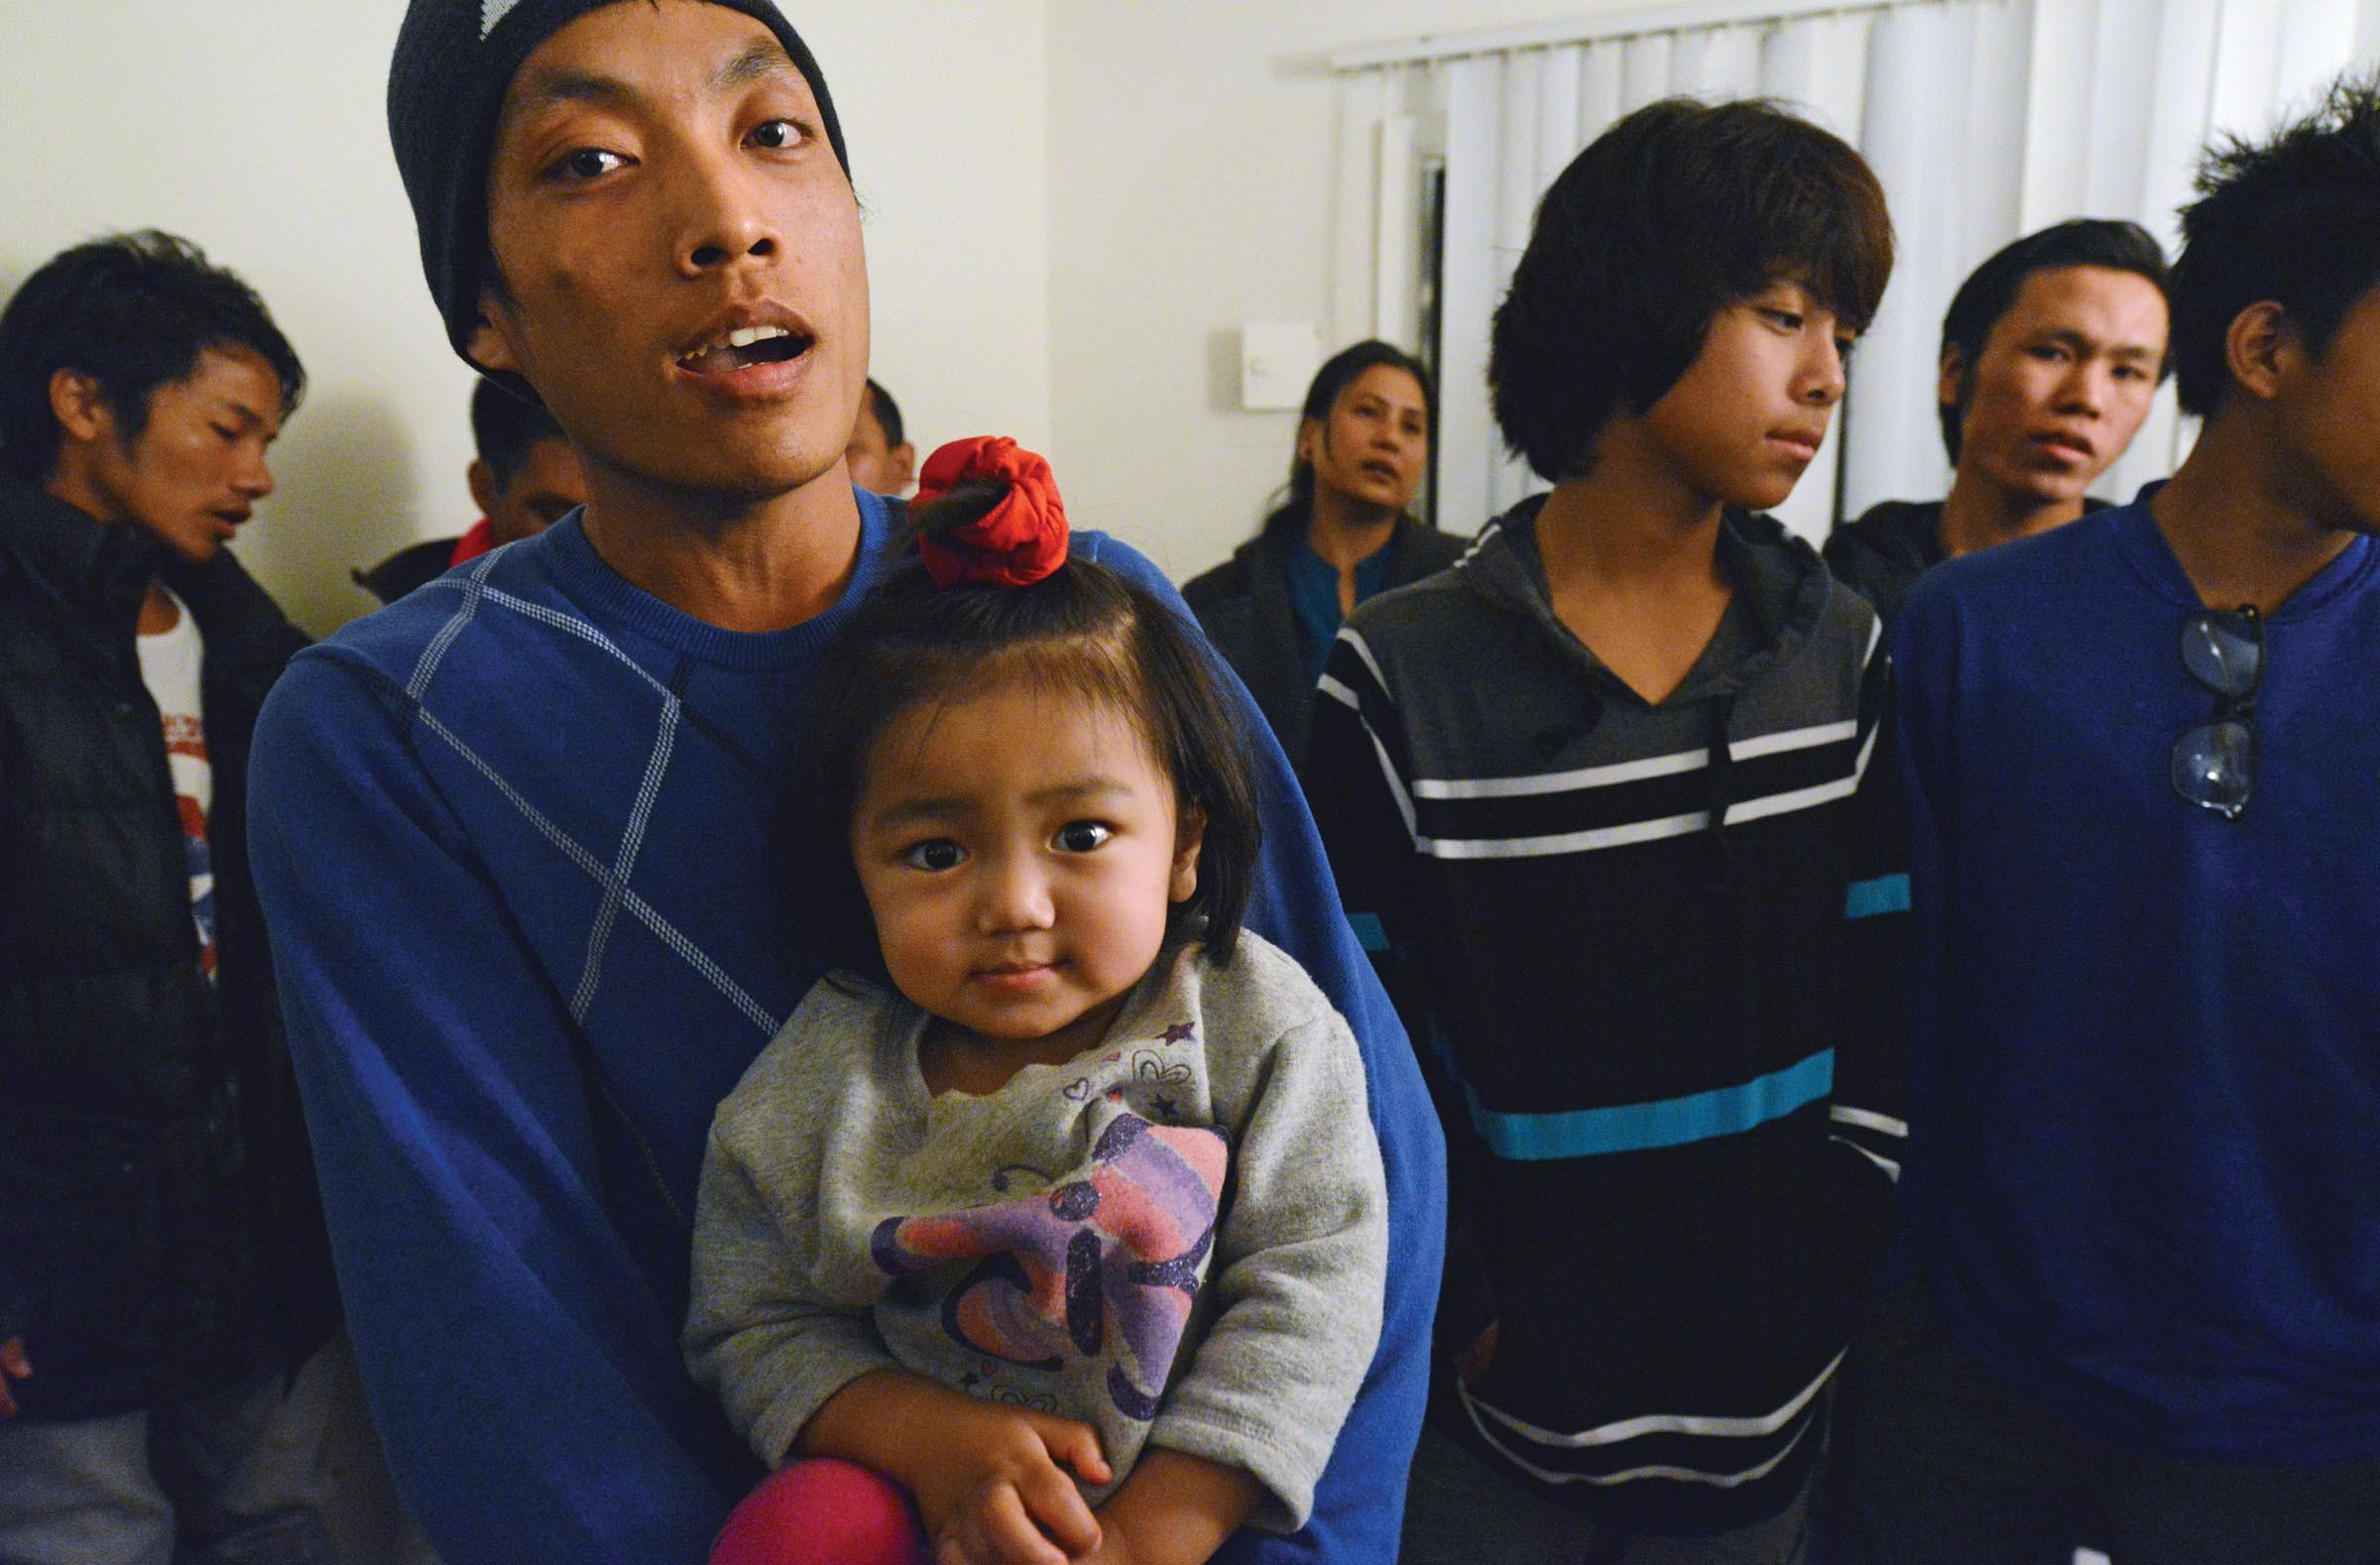 In addition to attending services at Tabernacle, members of the church who come from the Chin state of Burma hold a weekly worship service in their language on Saturdays in a North Side apartment complex.